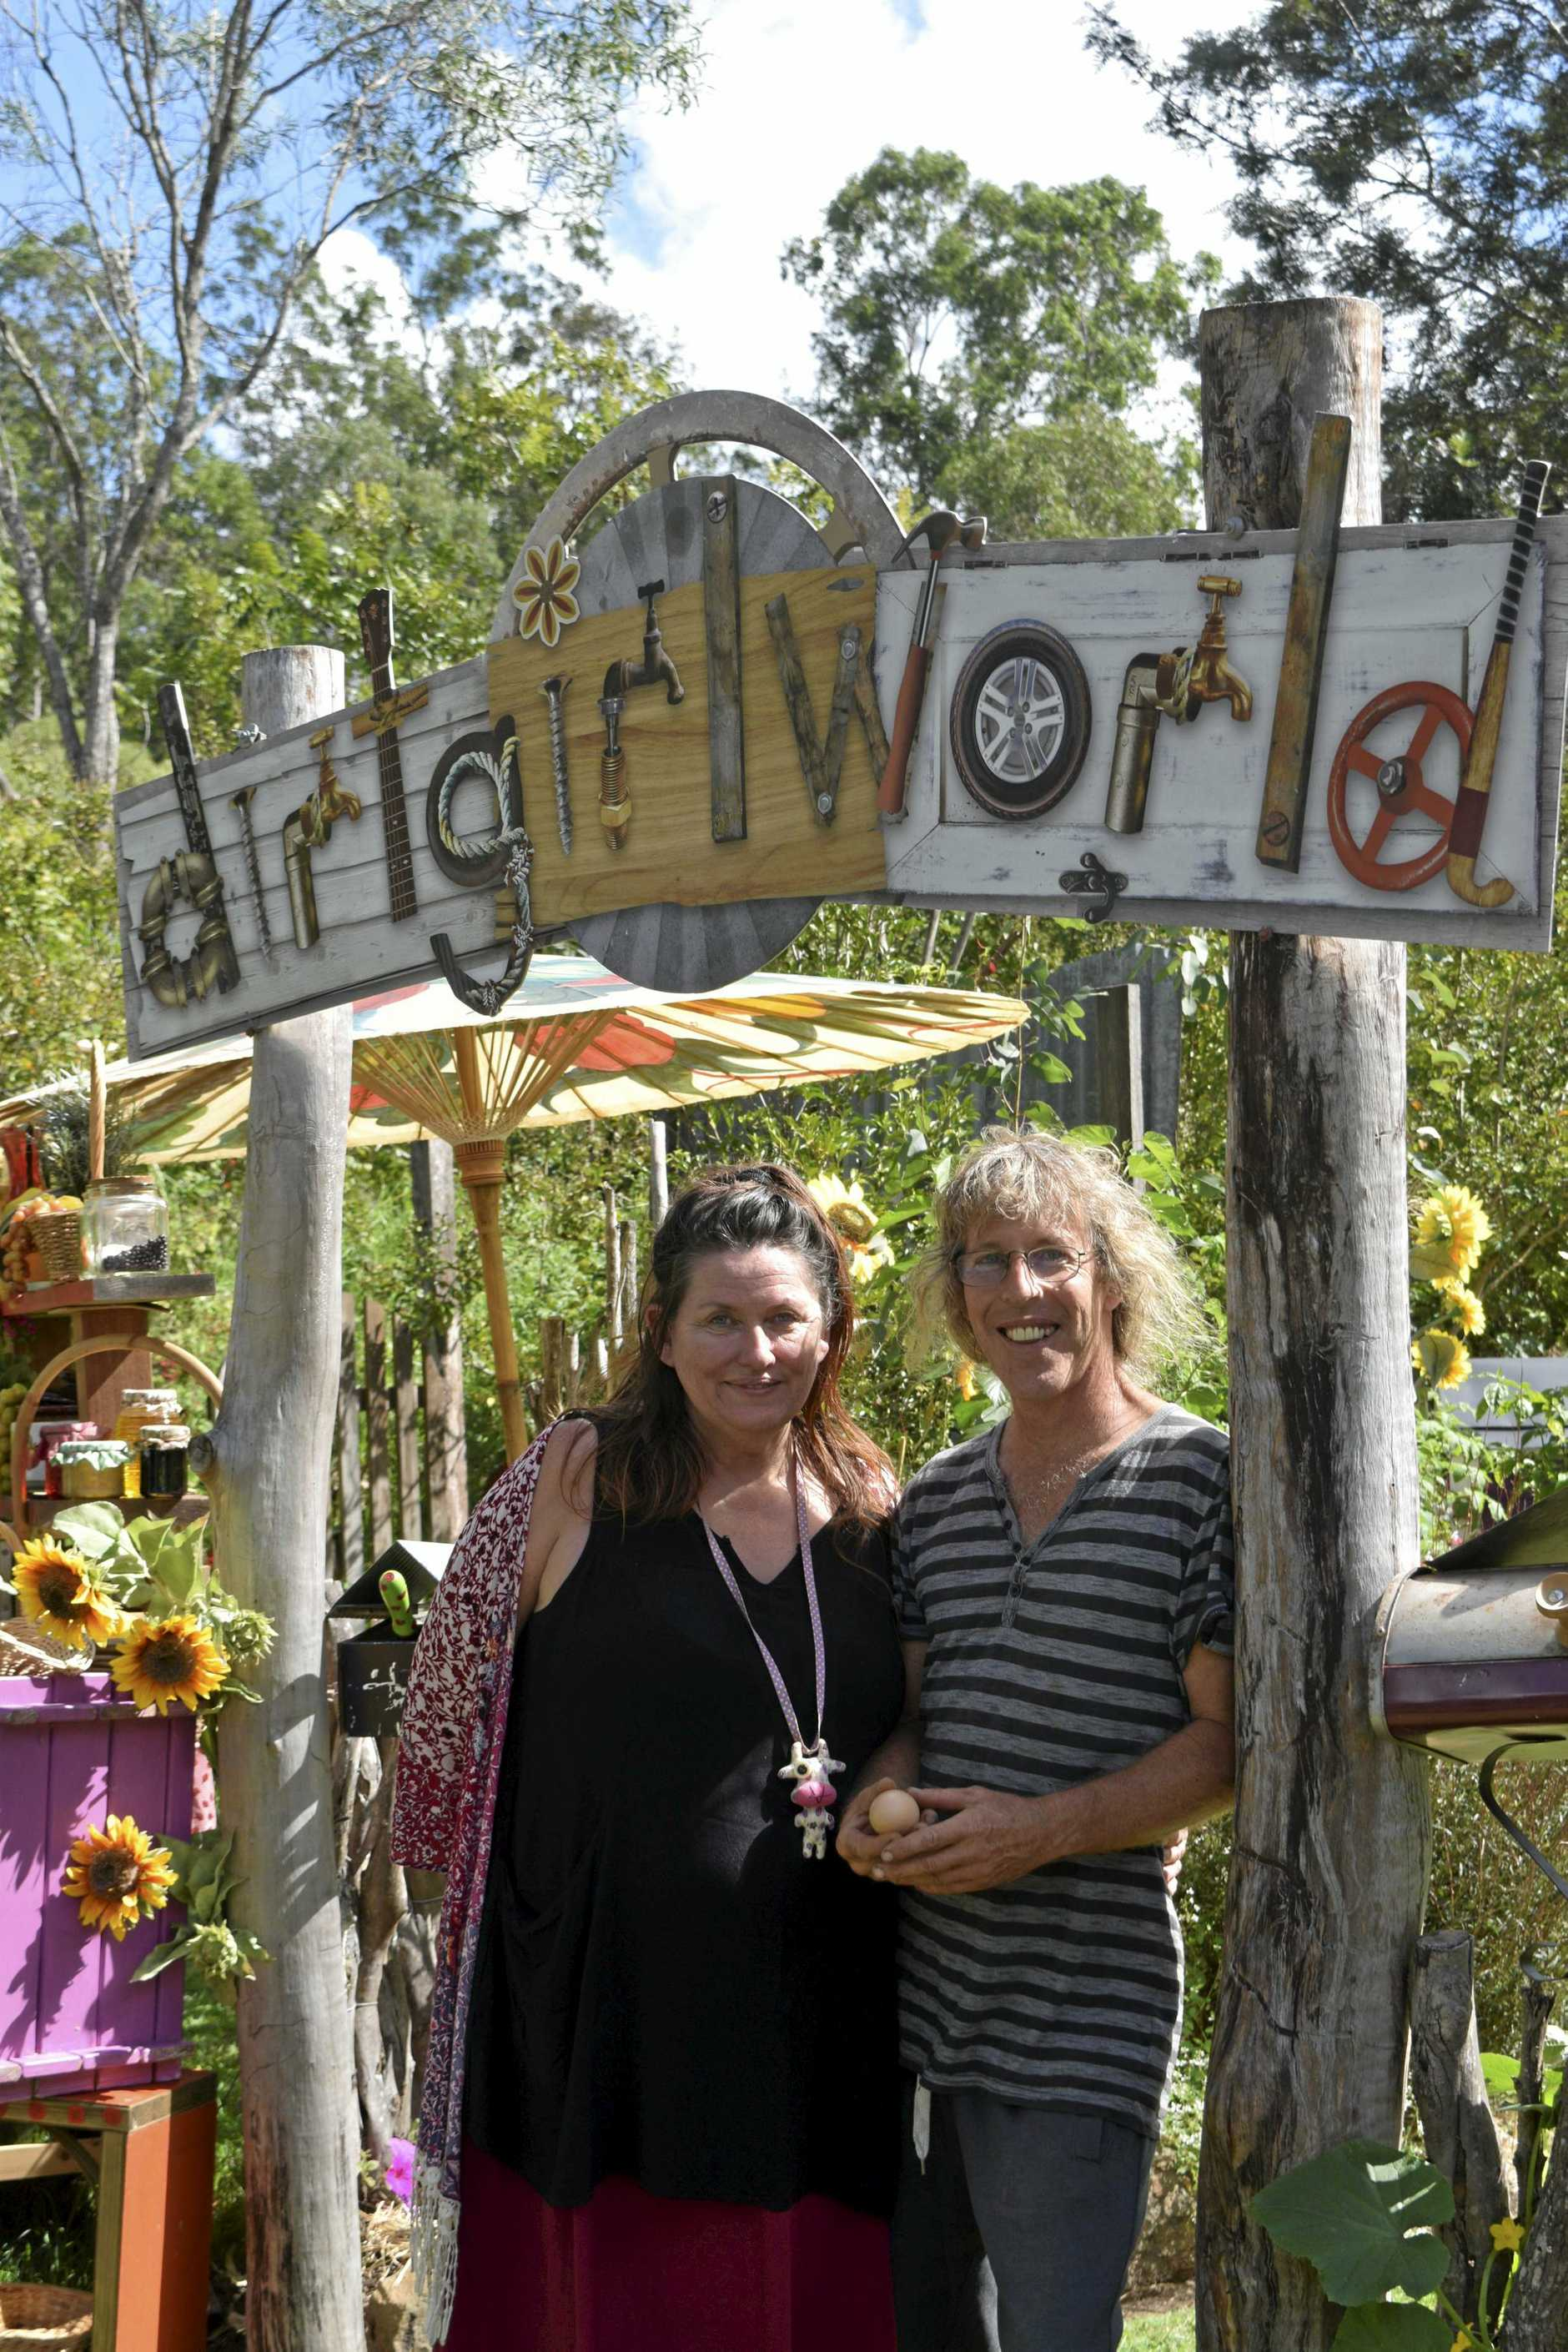 Dirtgirl creators Cate McQuillen and Hewey Eustace in the famous garden which will now star in its own live action television series on the ABC.